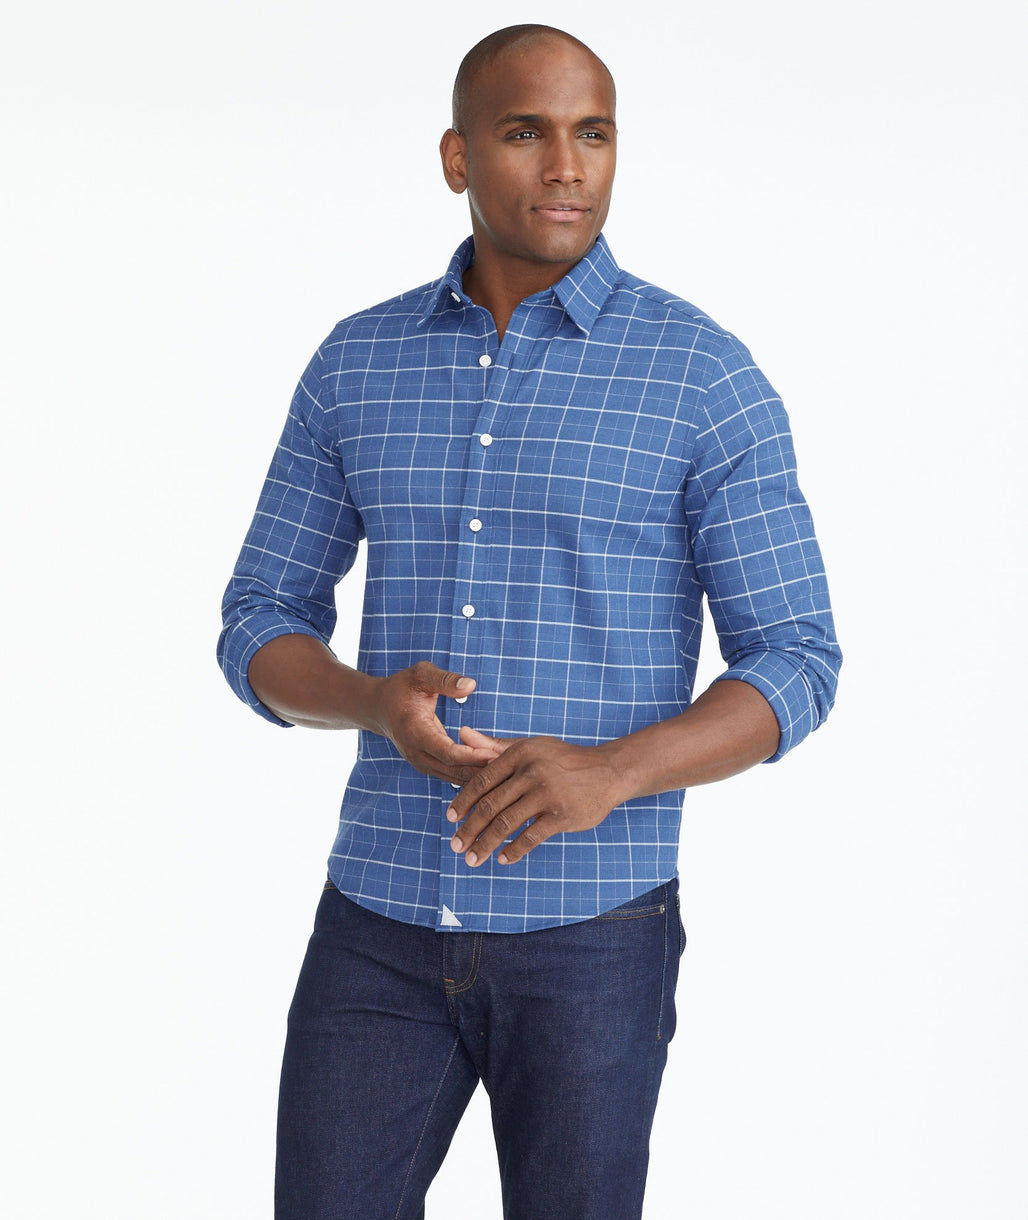 Model wearing a Blue Wrinkle-Free Performance Flannel Shirt